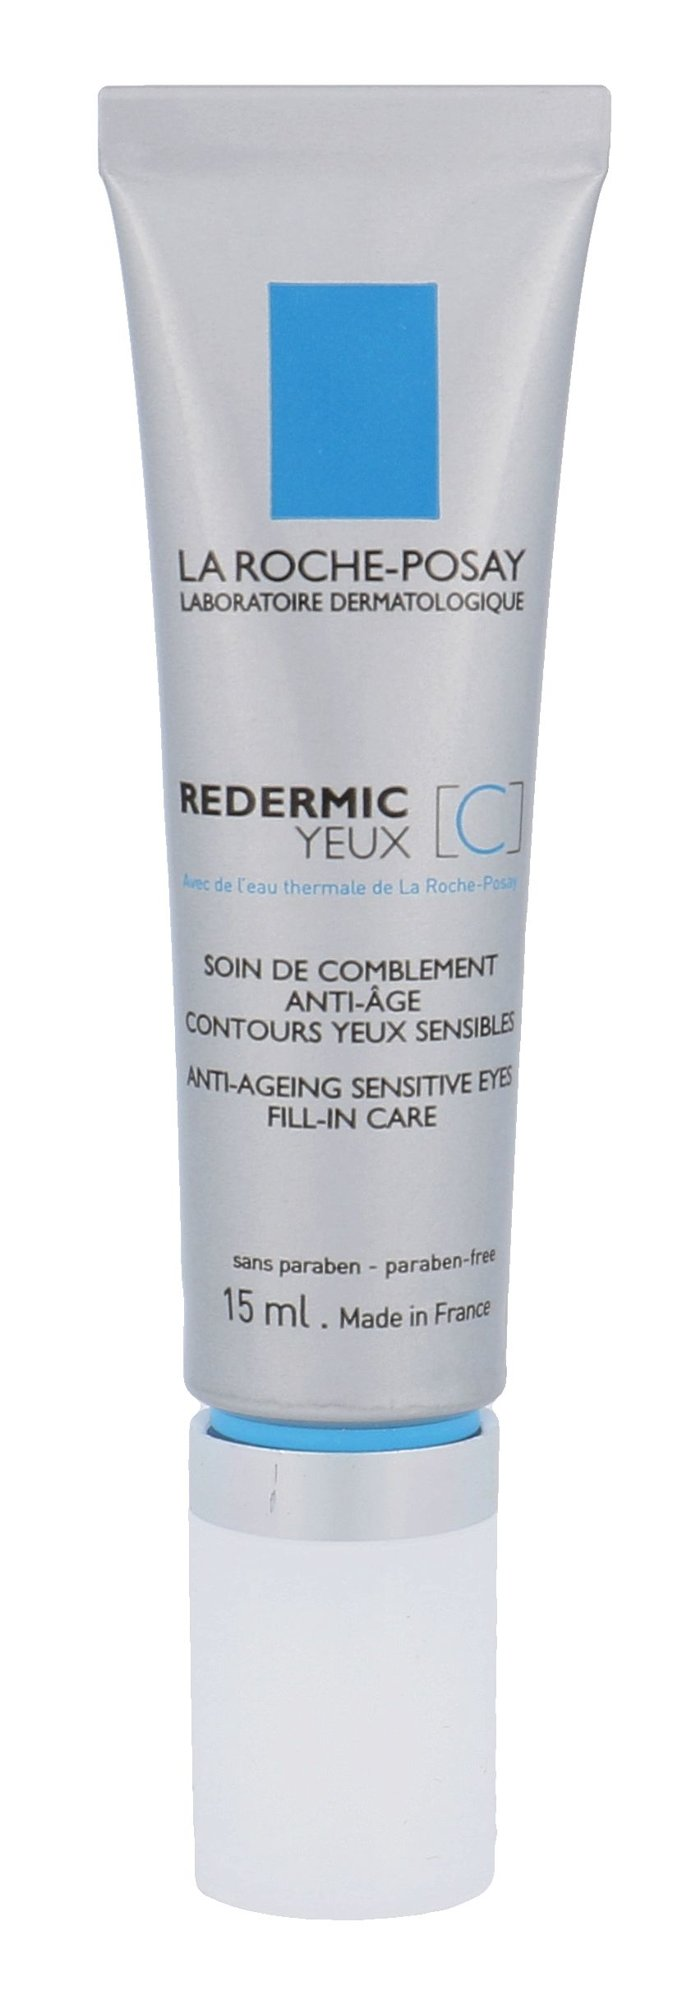 La Roche-Posay Redermic C Eyes Fill-In Care Cosmetic 15ml